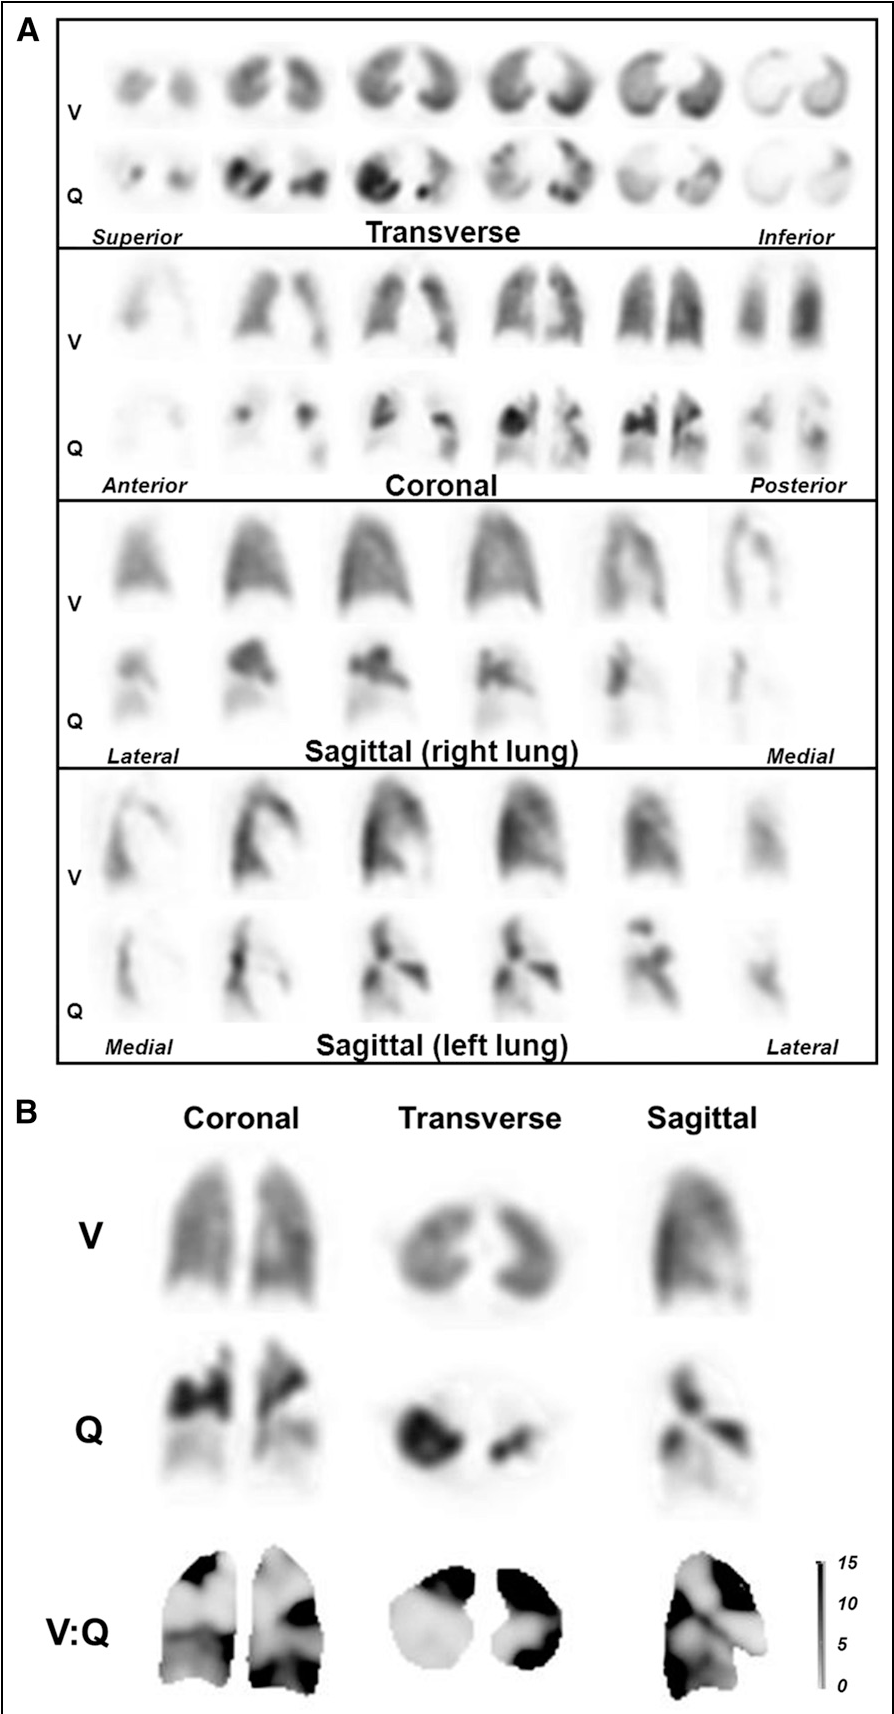 figure 1 from v/q scanning using spect and spect/ct. - semantic scholar